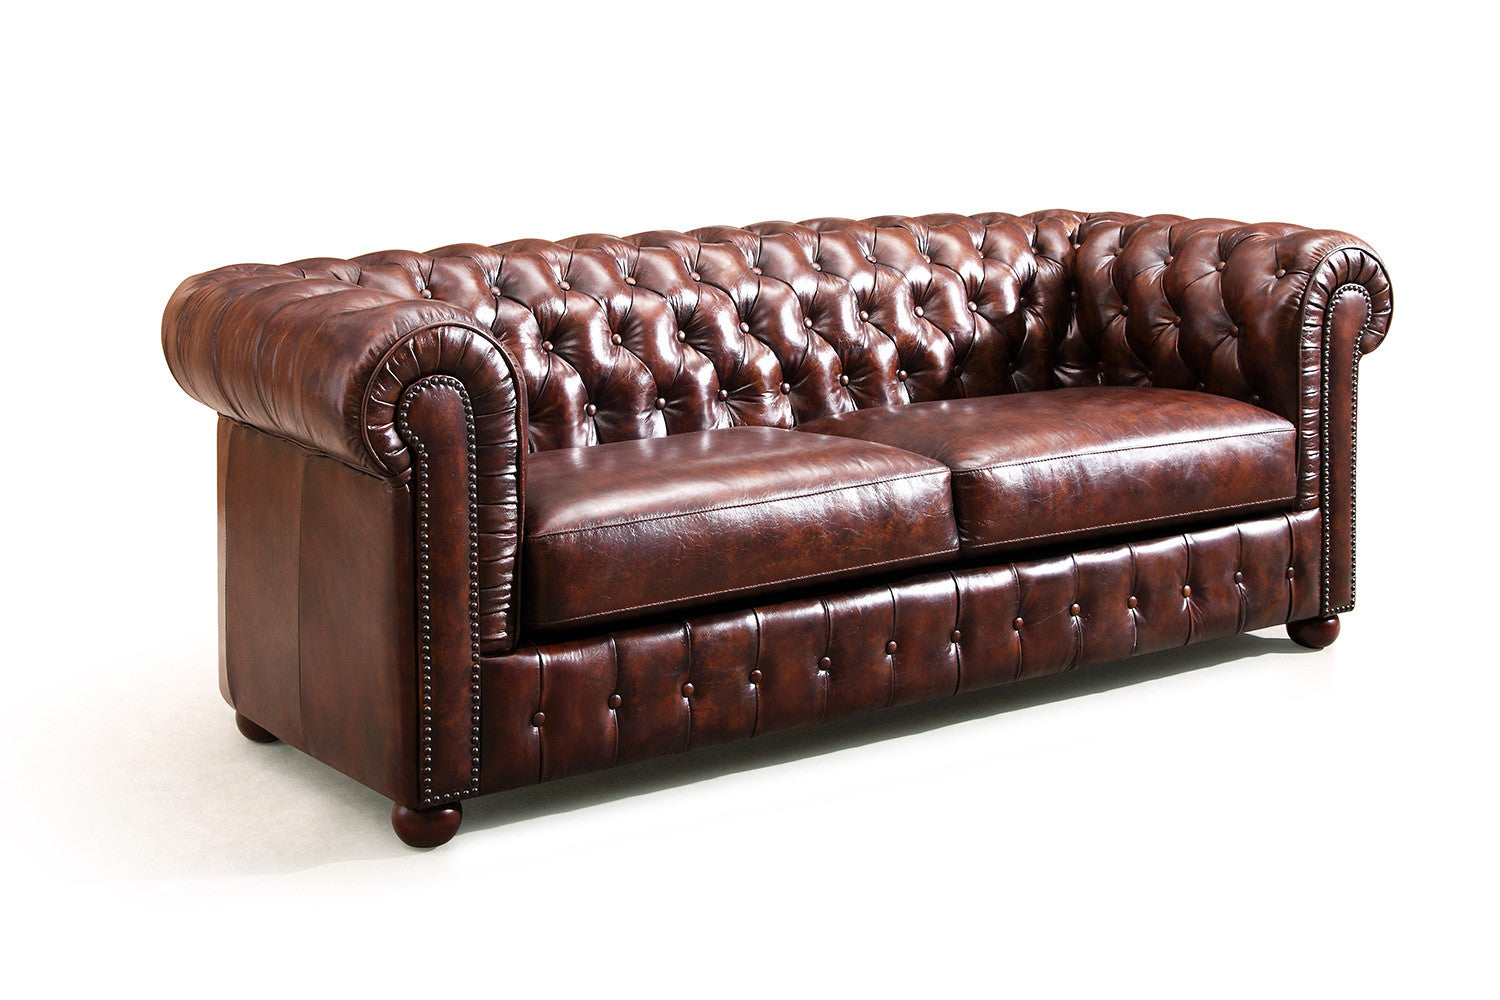 Chesterfield Sofa By Rose U0026 Moore   Profile View